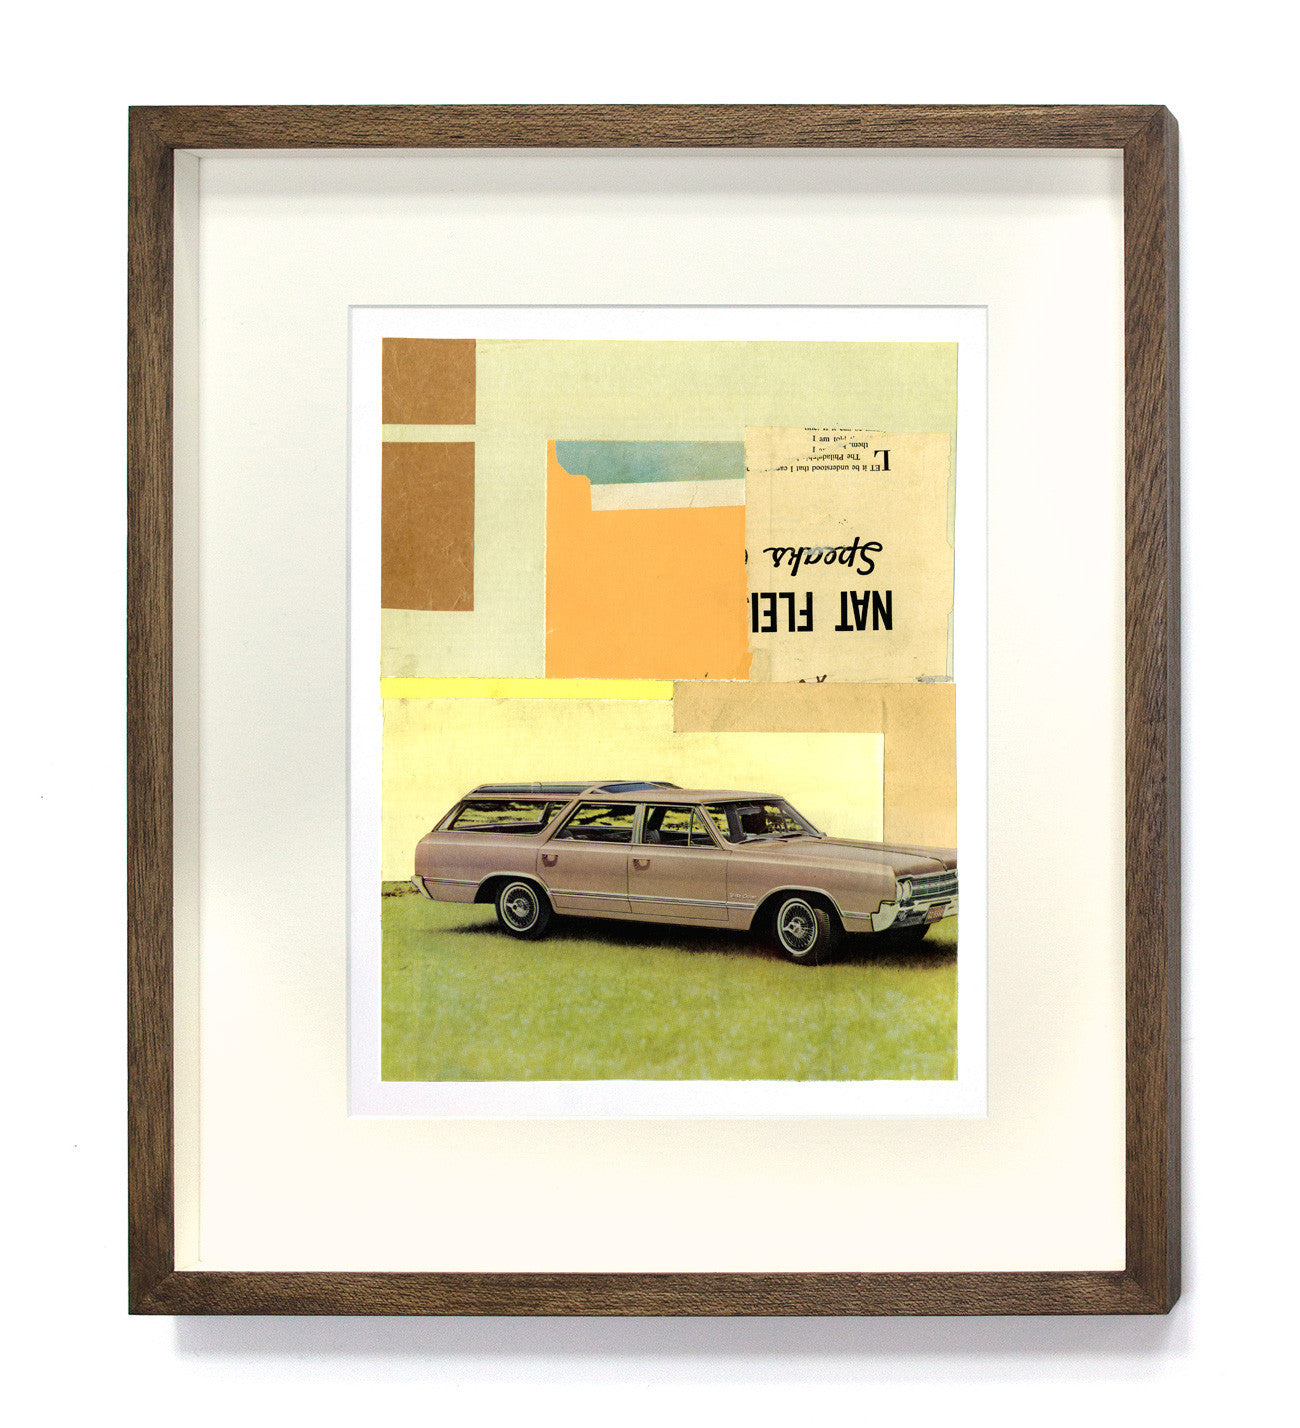 Kareem Rizk: Stationwagon No.3 - Smithson Gallery - 2